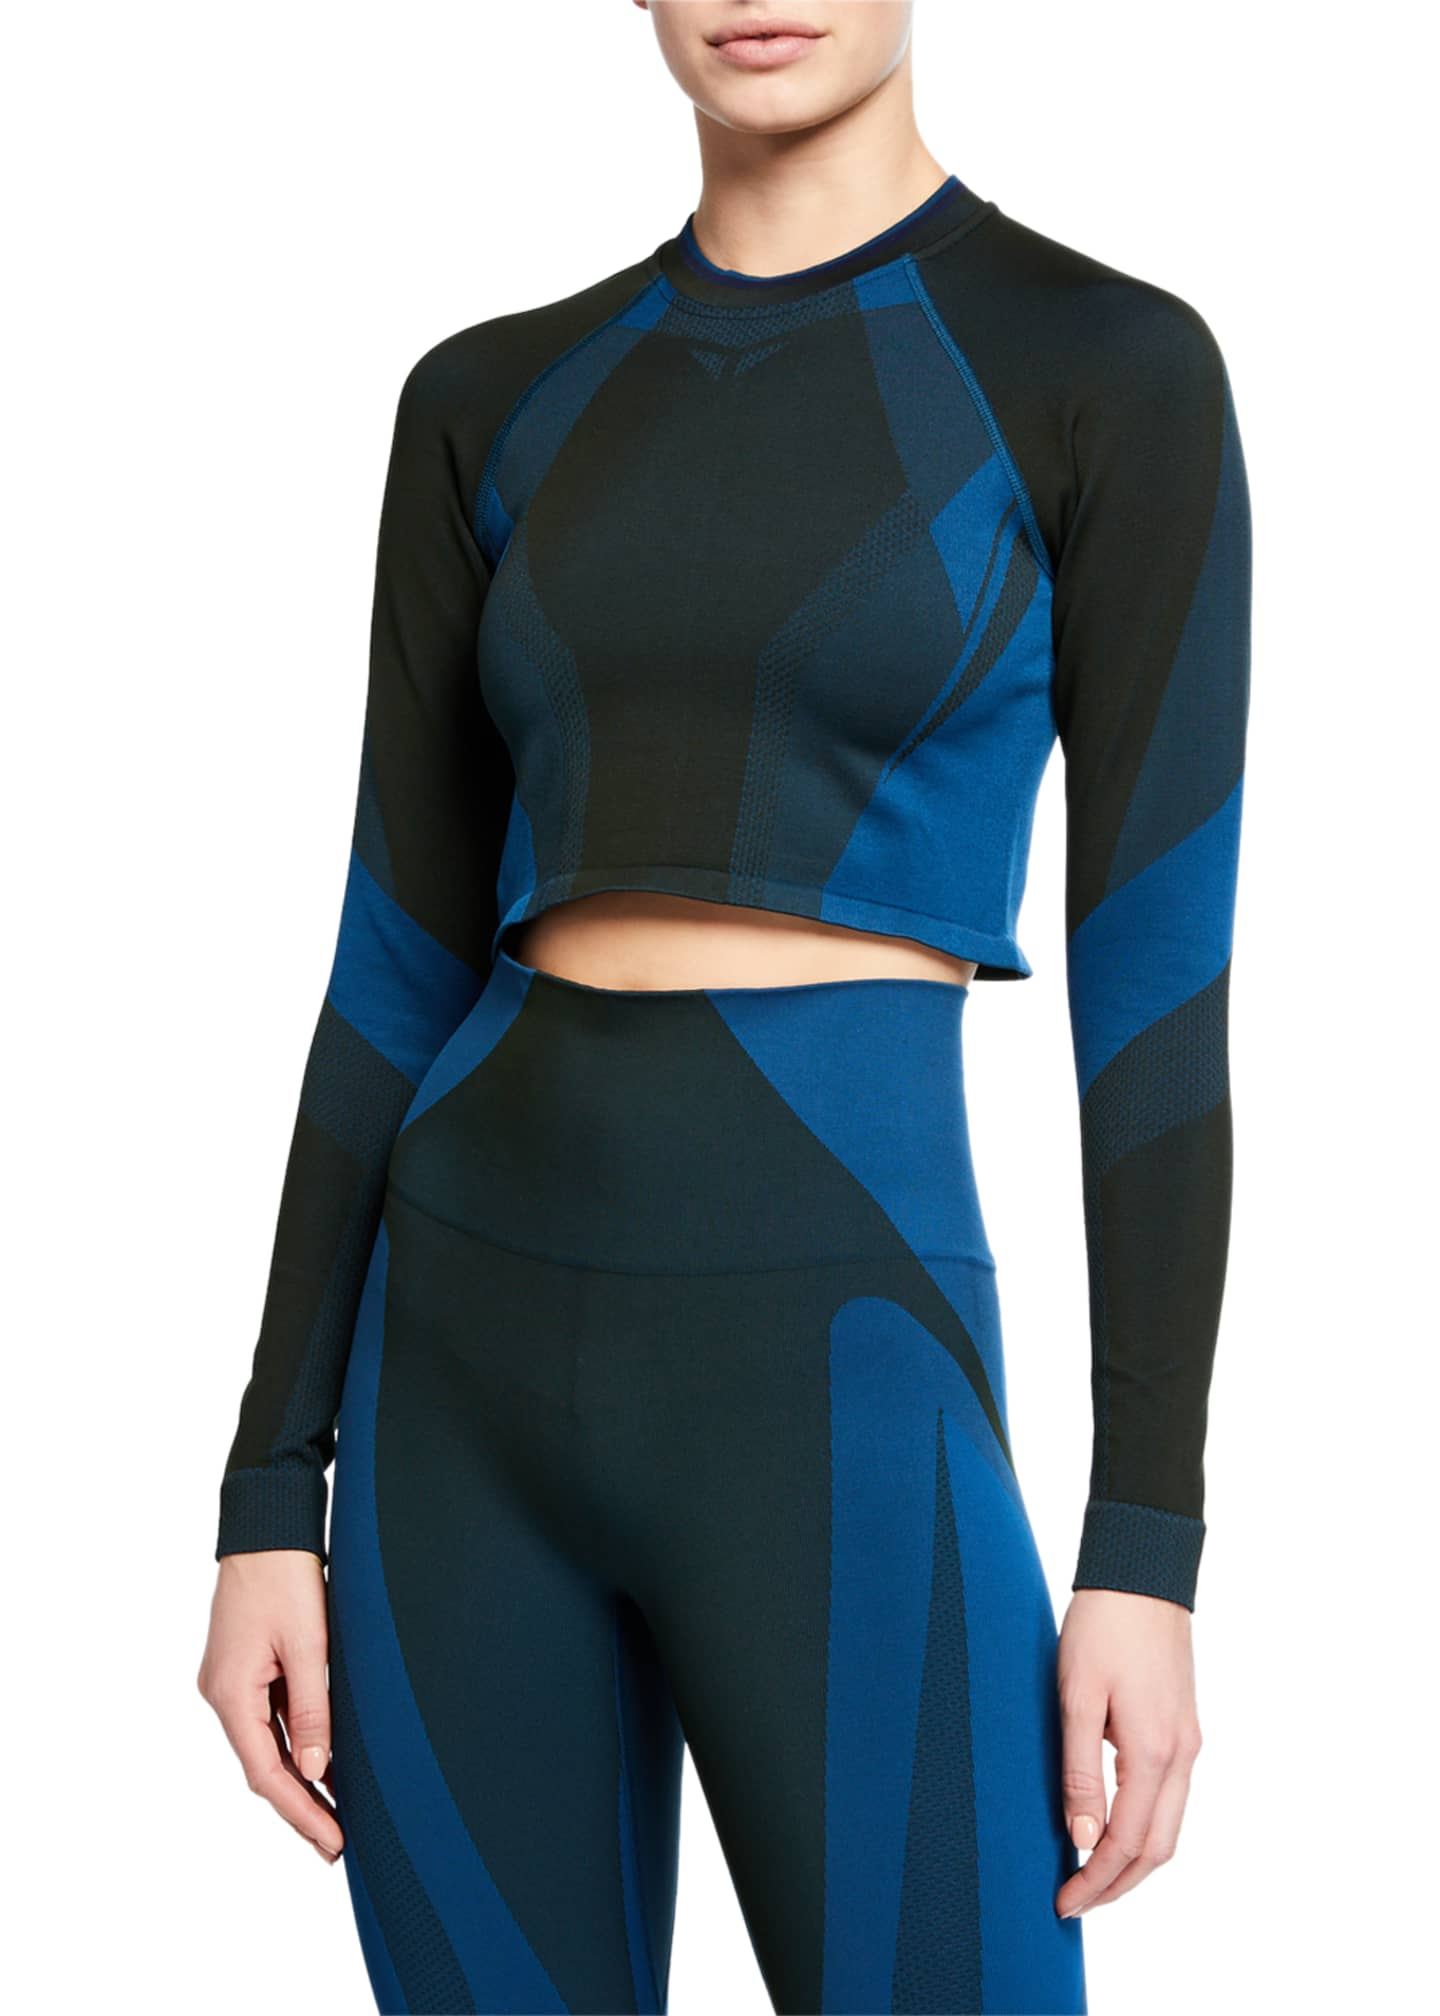 LNDR All Seasons Seamless Cropped Performance Top